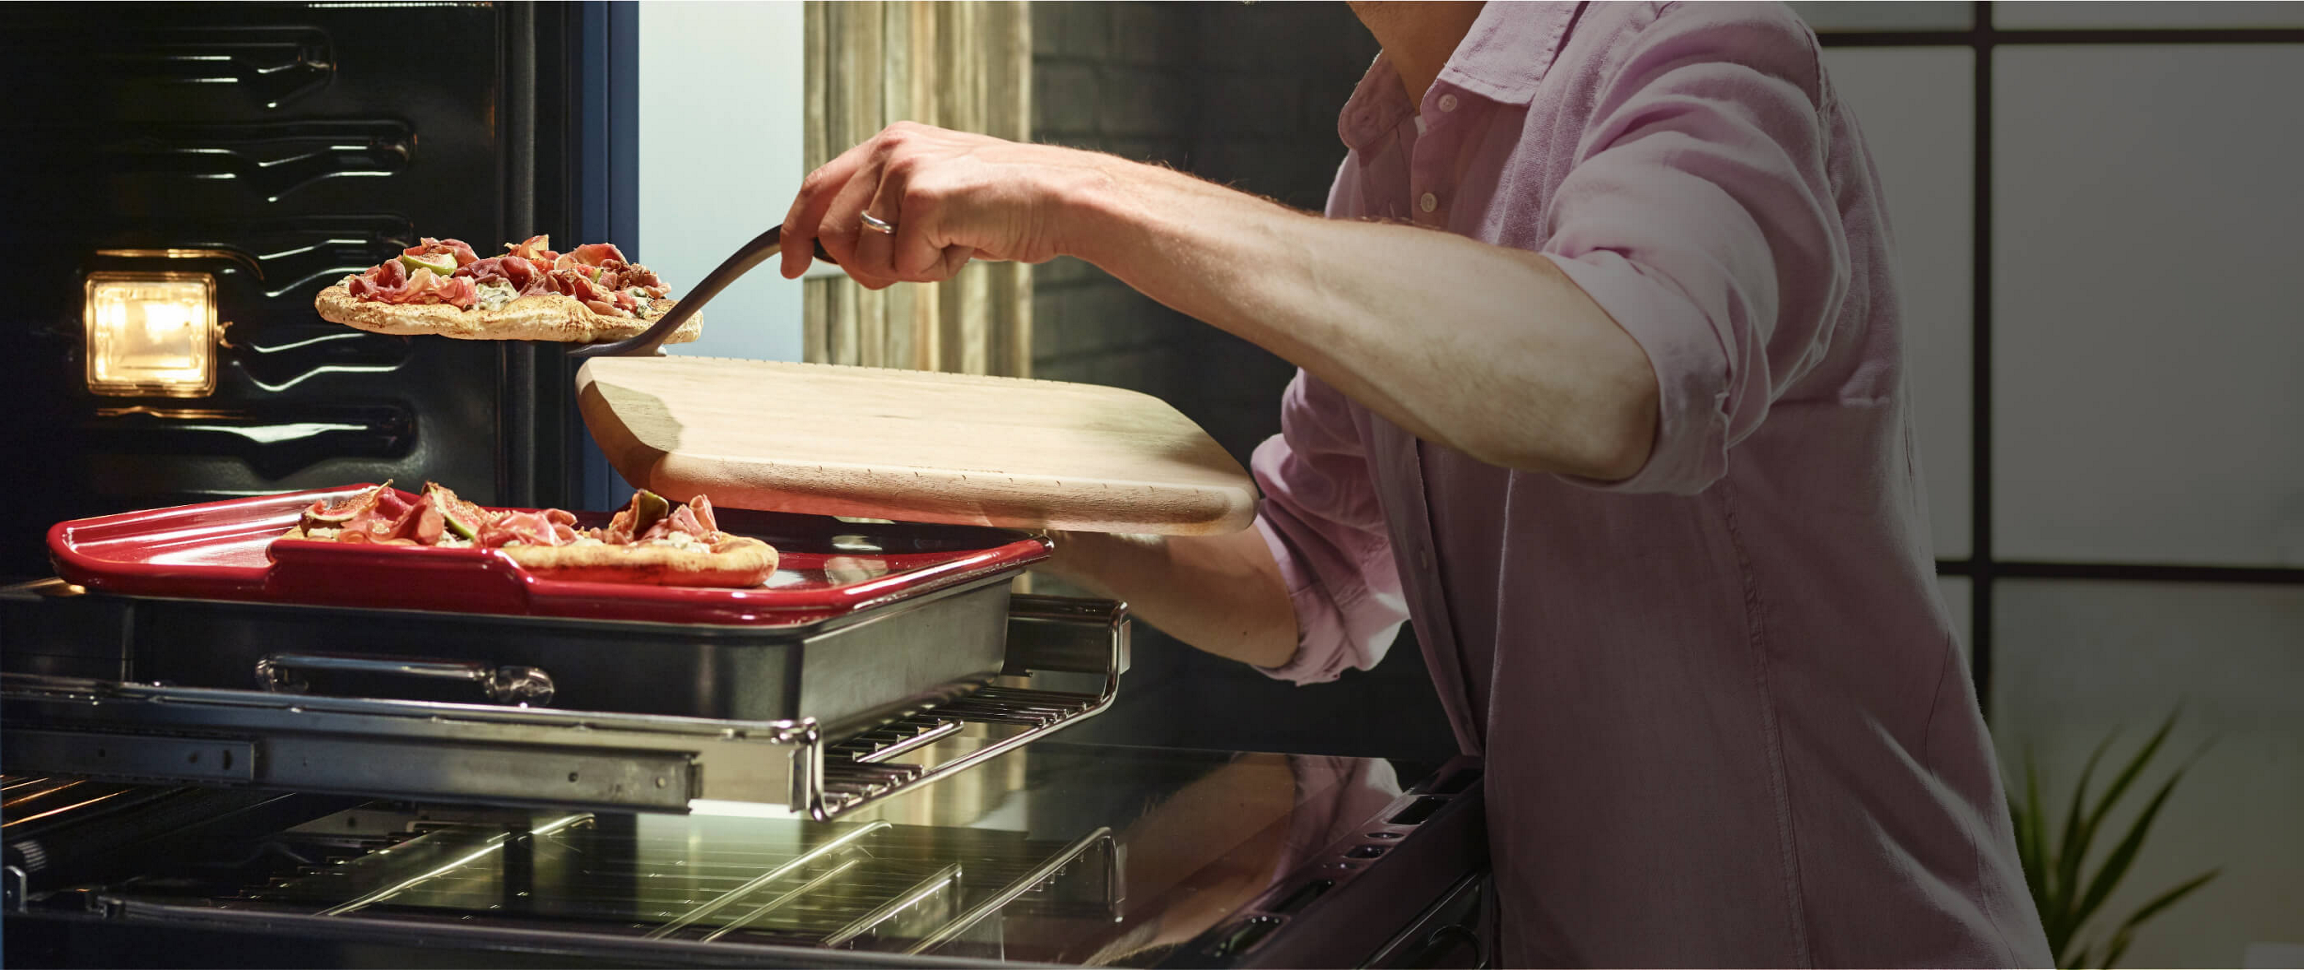 A Smart Oven Plus, open with the pizza stone attachment slid forward. A Maker transfers one of two gourmet pizza onto a cutting board for service.